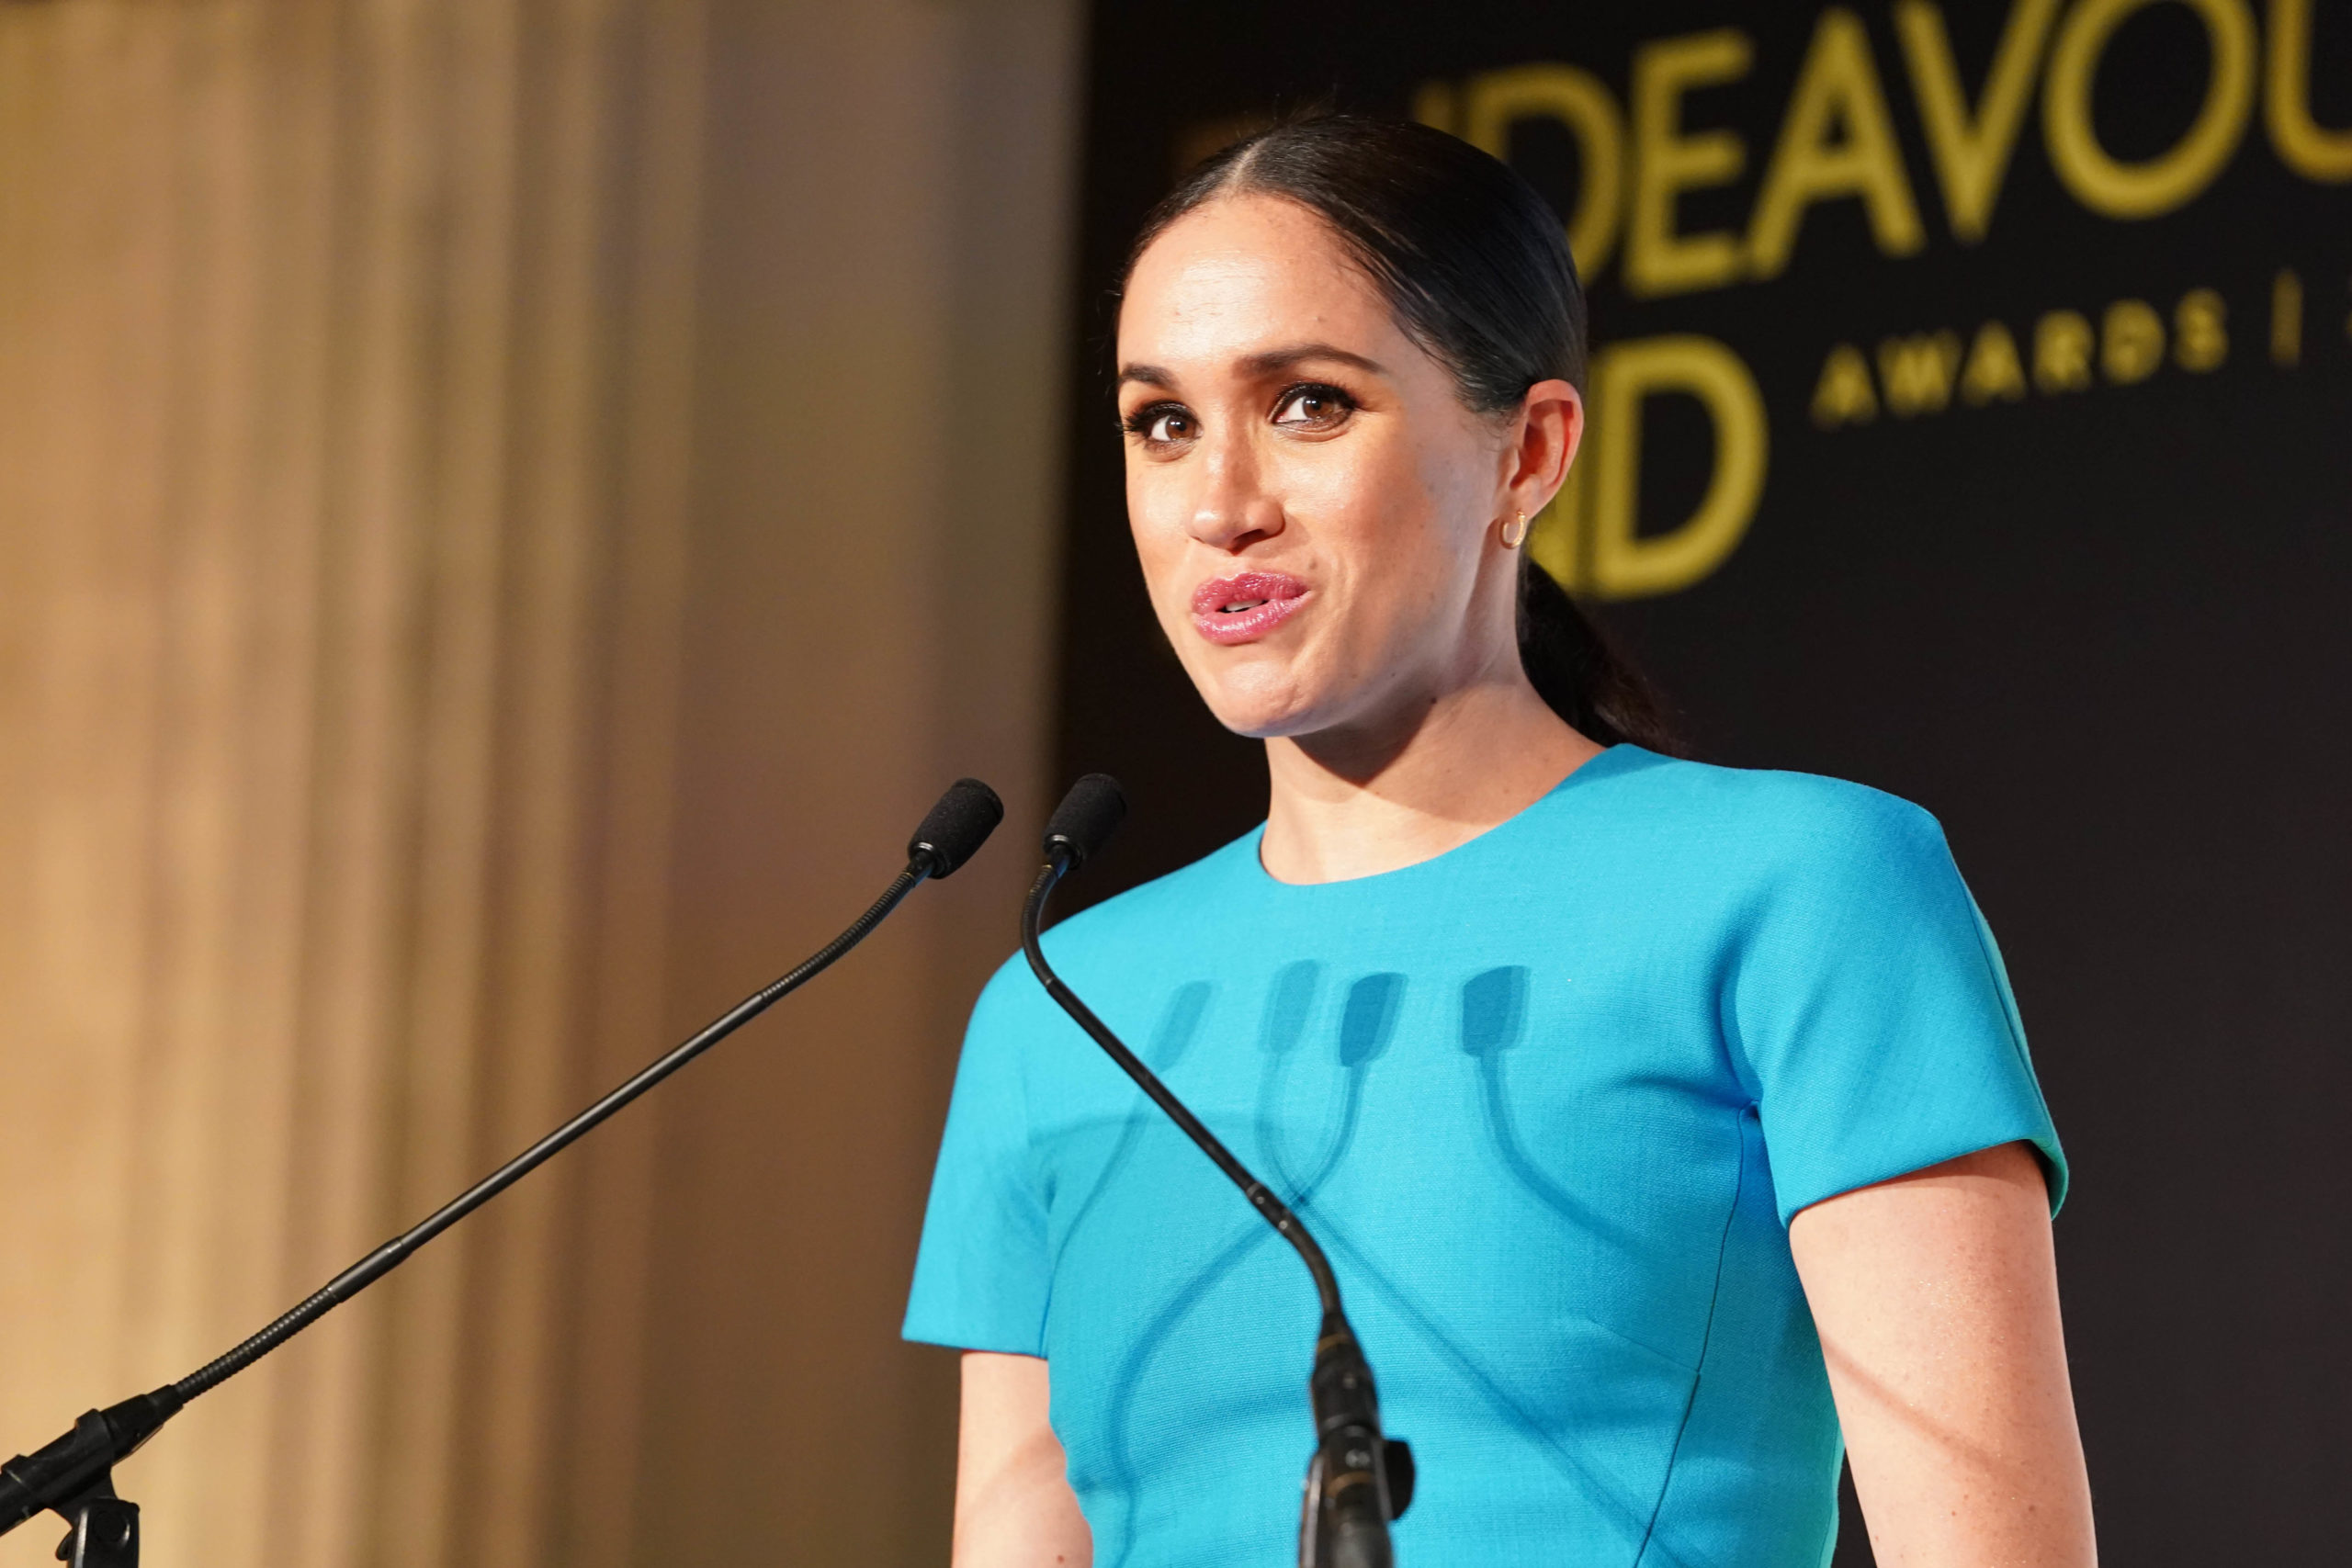 Meghan Markle wants to Win an Oscar Award